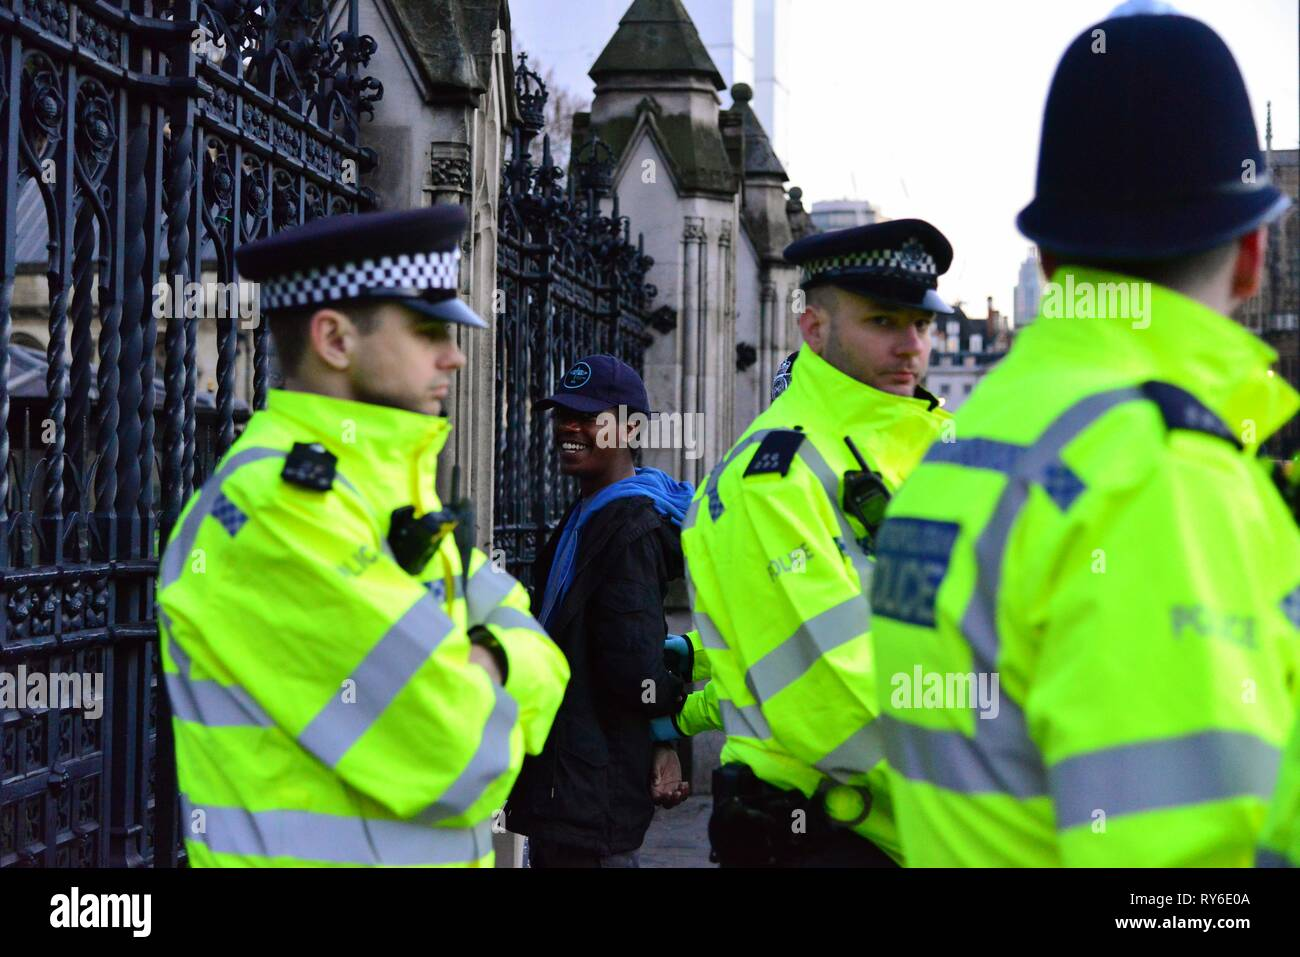 London, UK. 12th Mar, 2019. A man is handcuffed outside the Houses of Parliament after disturbing flowers left at a memorial for murdered  PC Keith Palmer. Credit: Claire Doherty/Alamy Live News - Stock Image